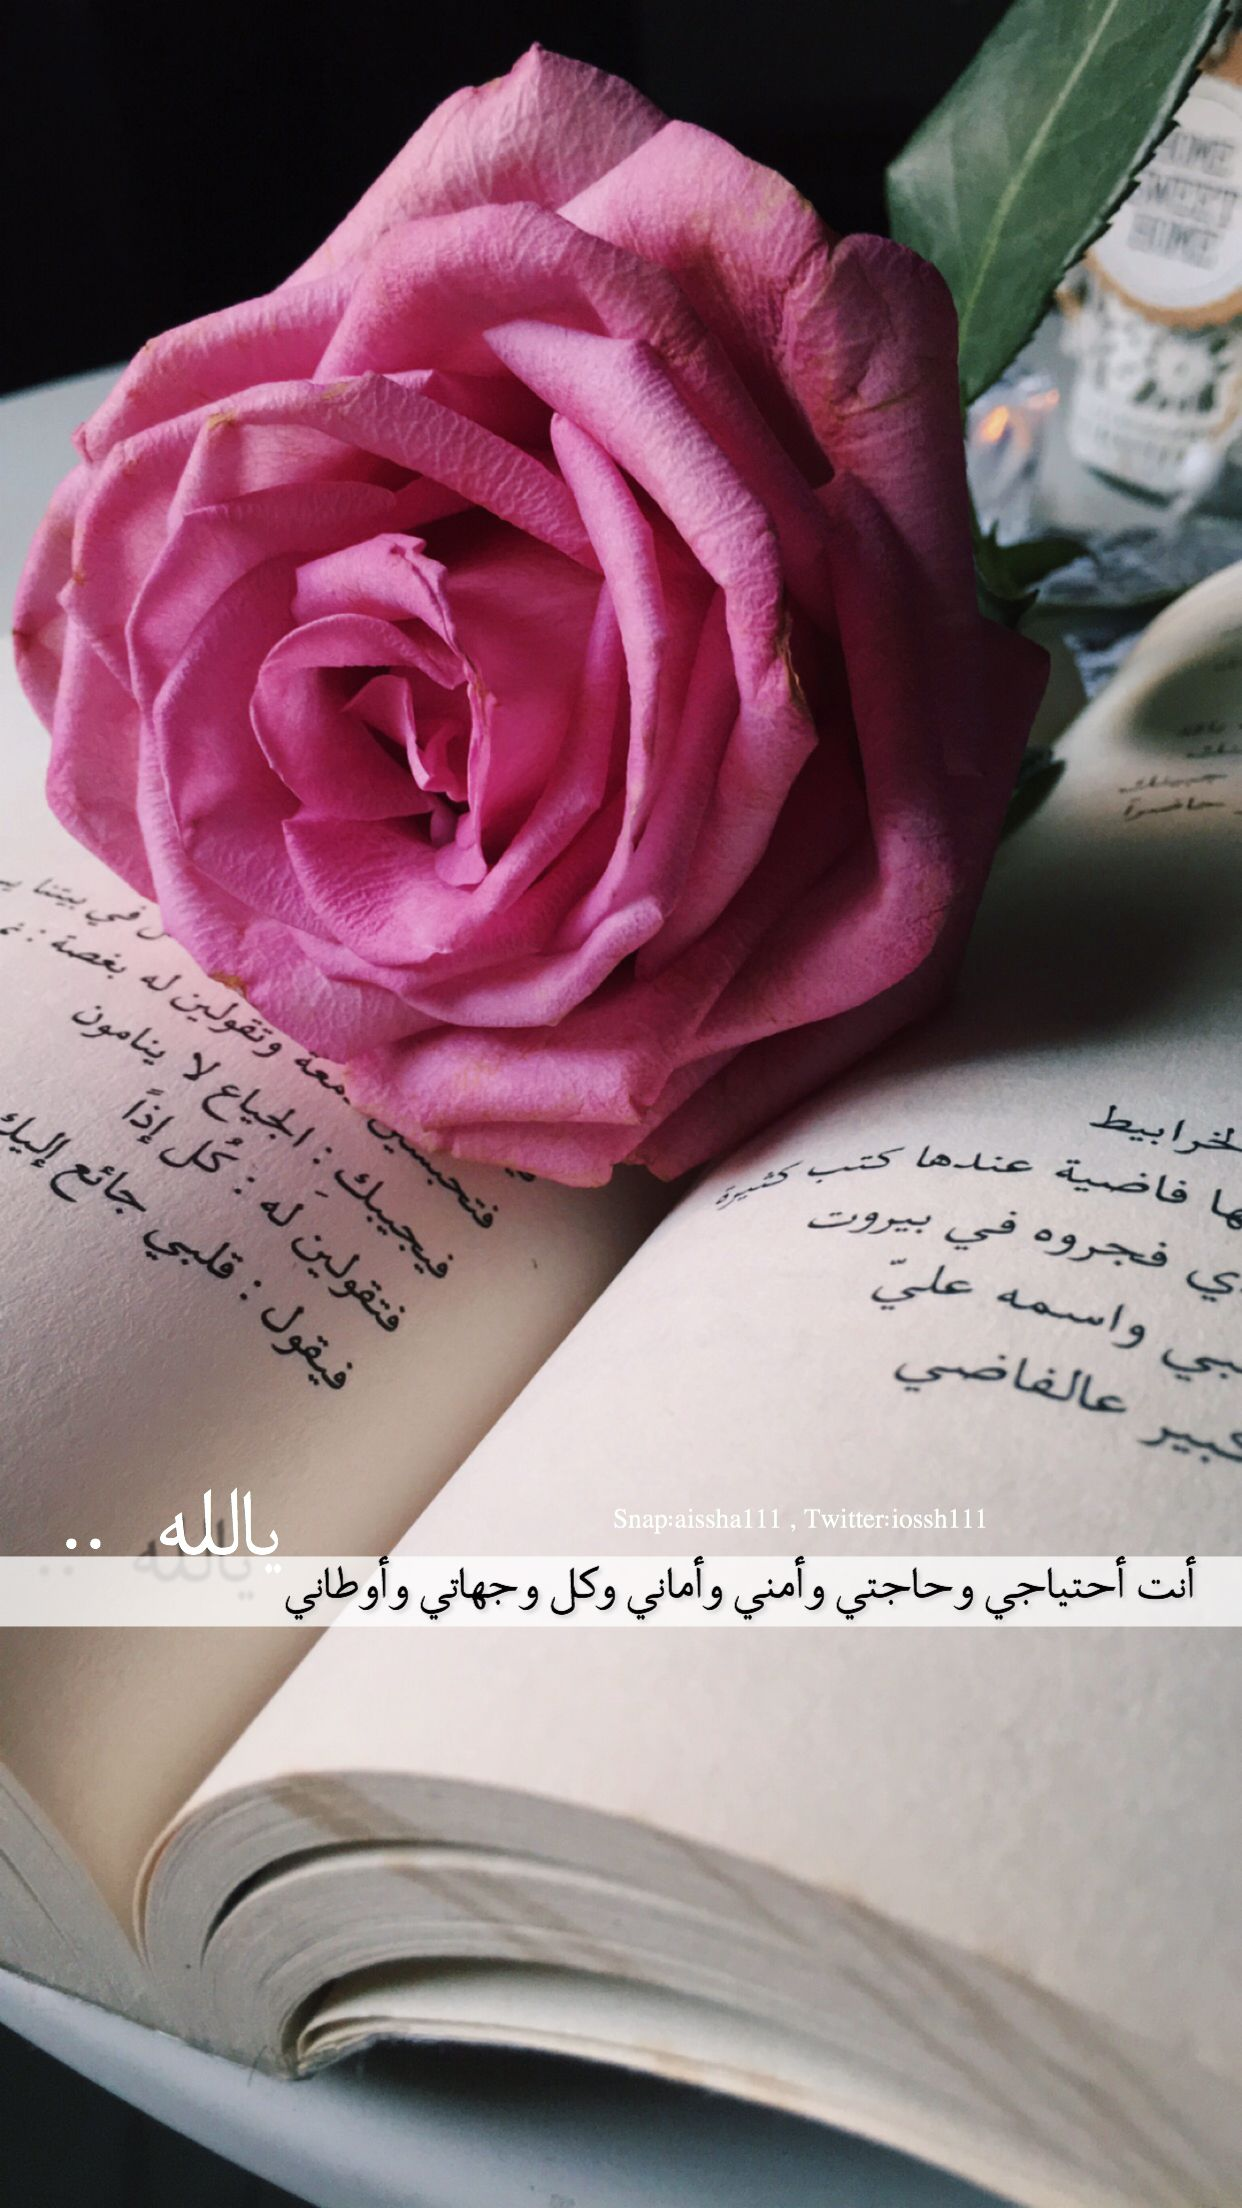 Pin By Iosh On قهوة قهوتي قهوة الصباح Coffee Romantic Quotes Arabic Quotes Rose